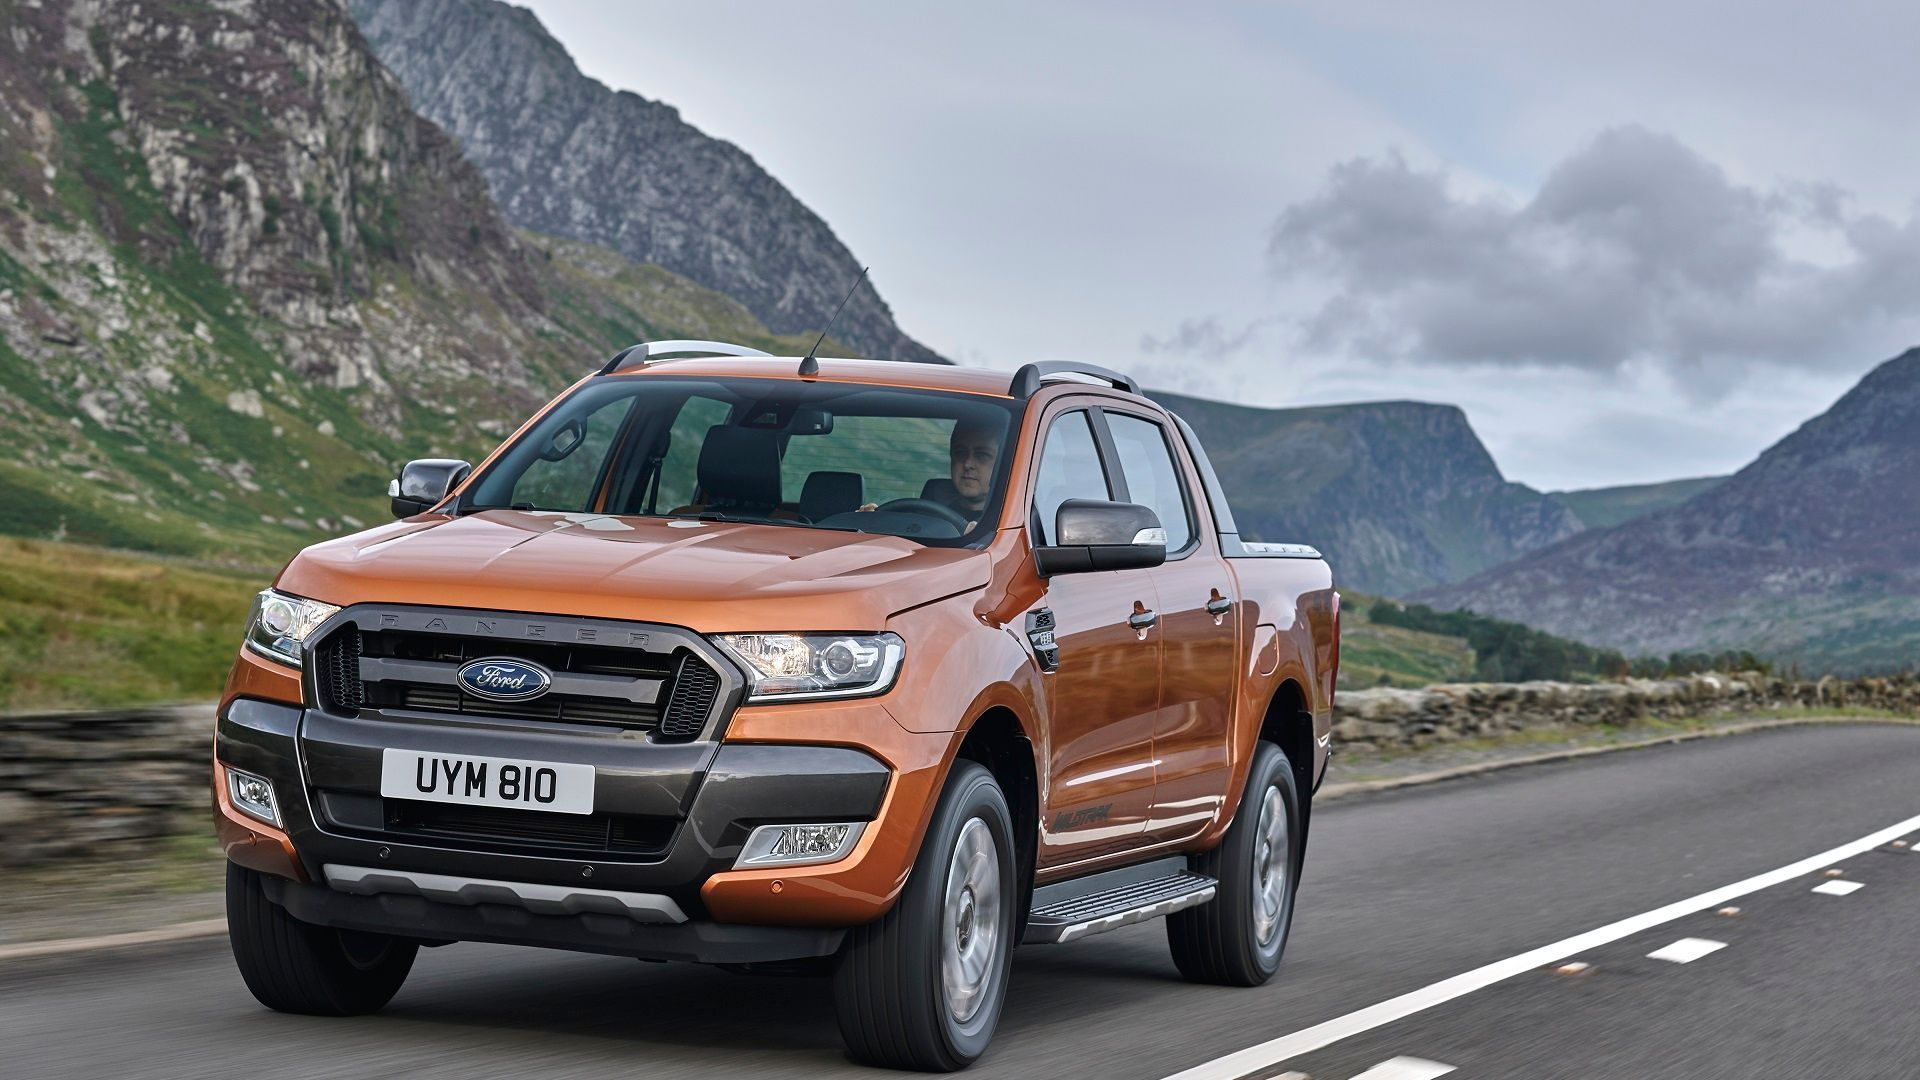 Ford Ranger Black Edition image